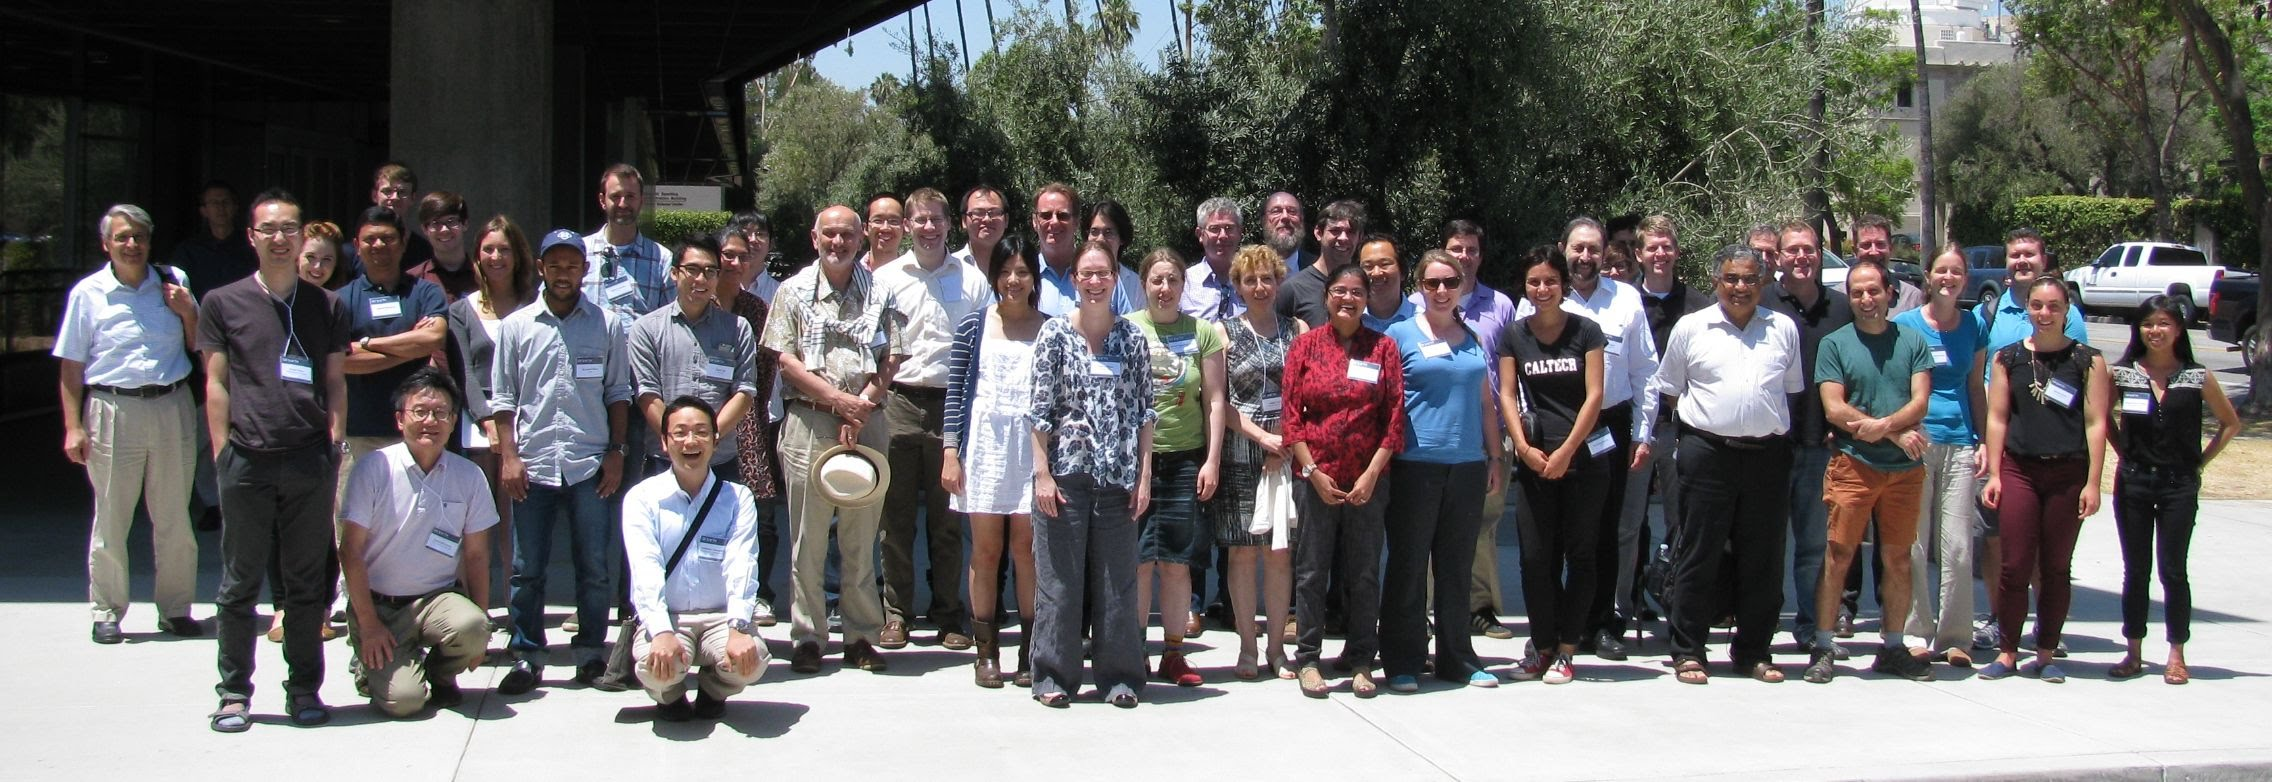 GROWTH team at the first GROWTH conference in Caltech, July 2016